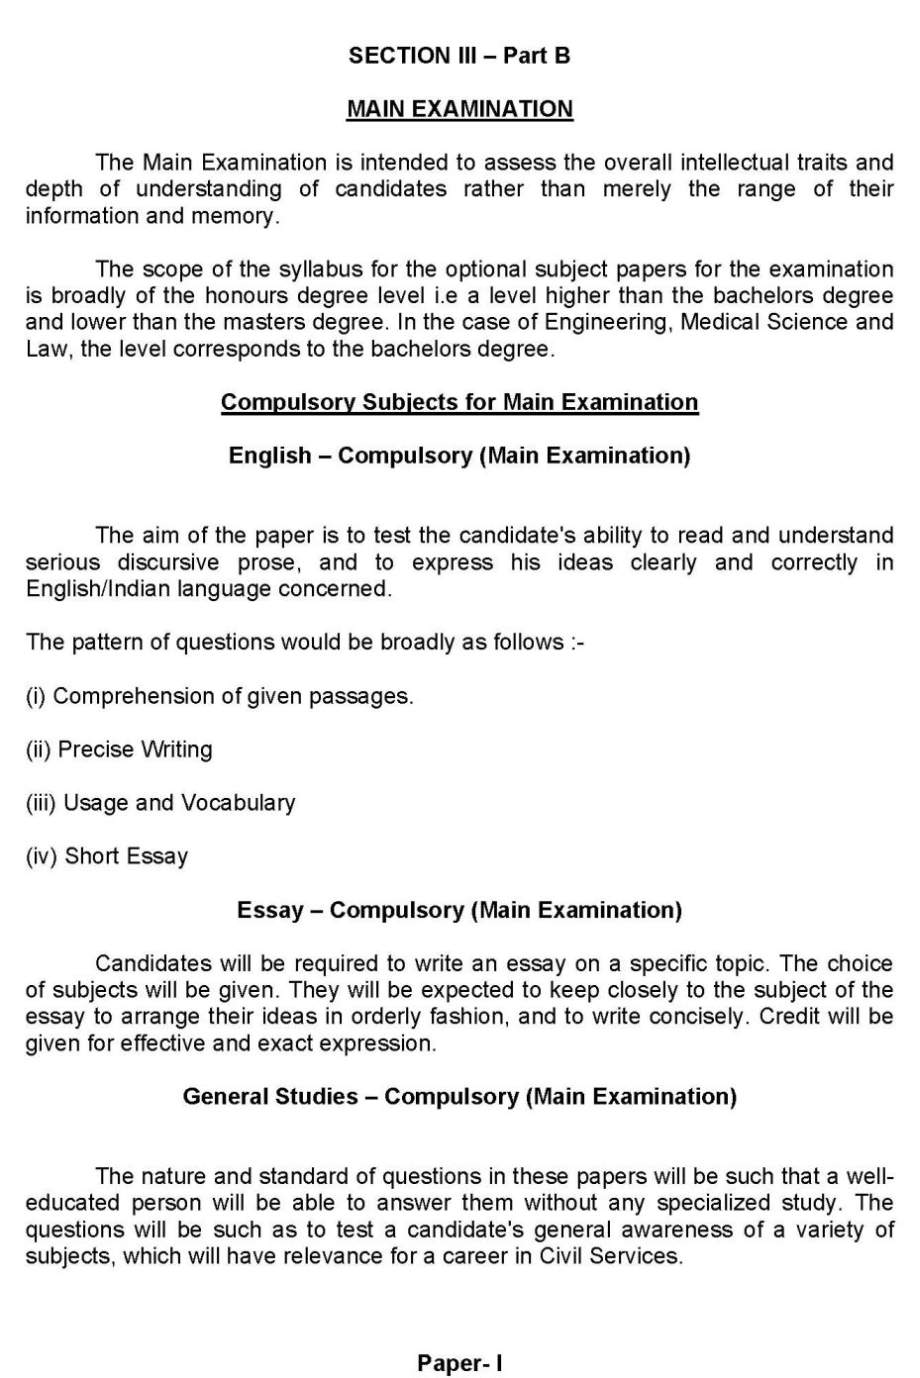 mcs exam preparation tips 2017 2018 student forum if you want to see complete syllabus then you need to following attached file